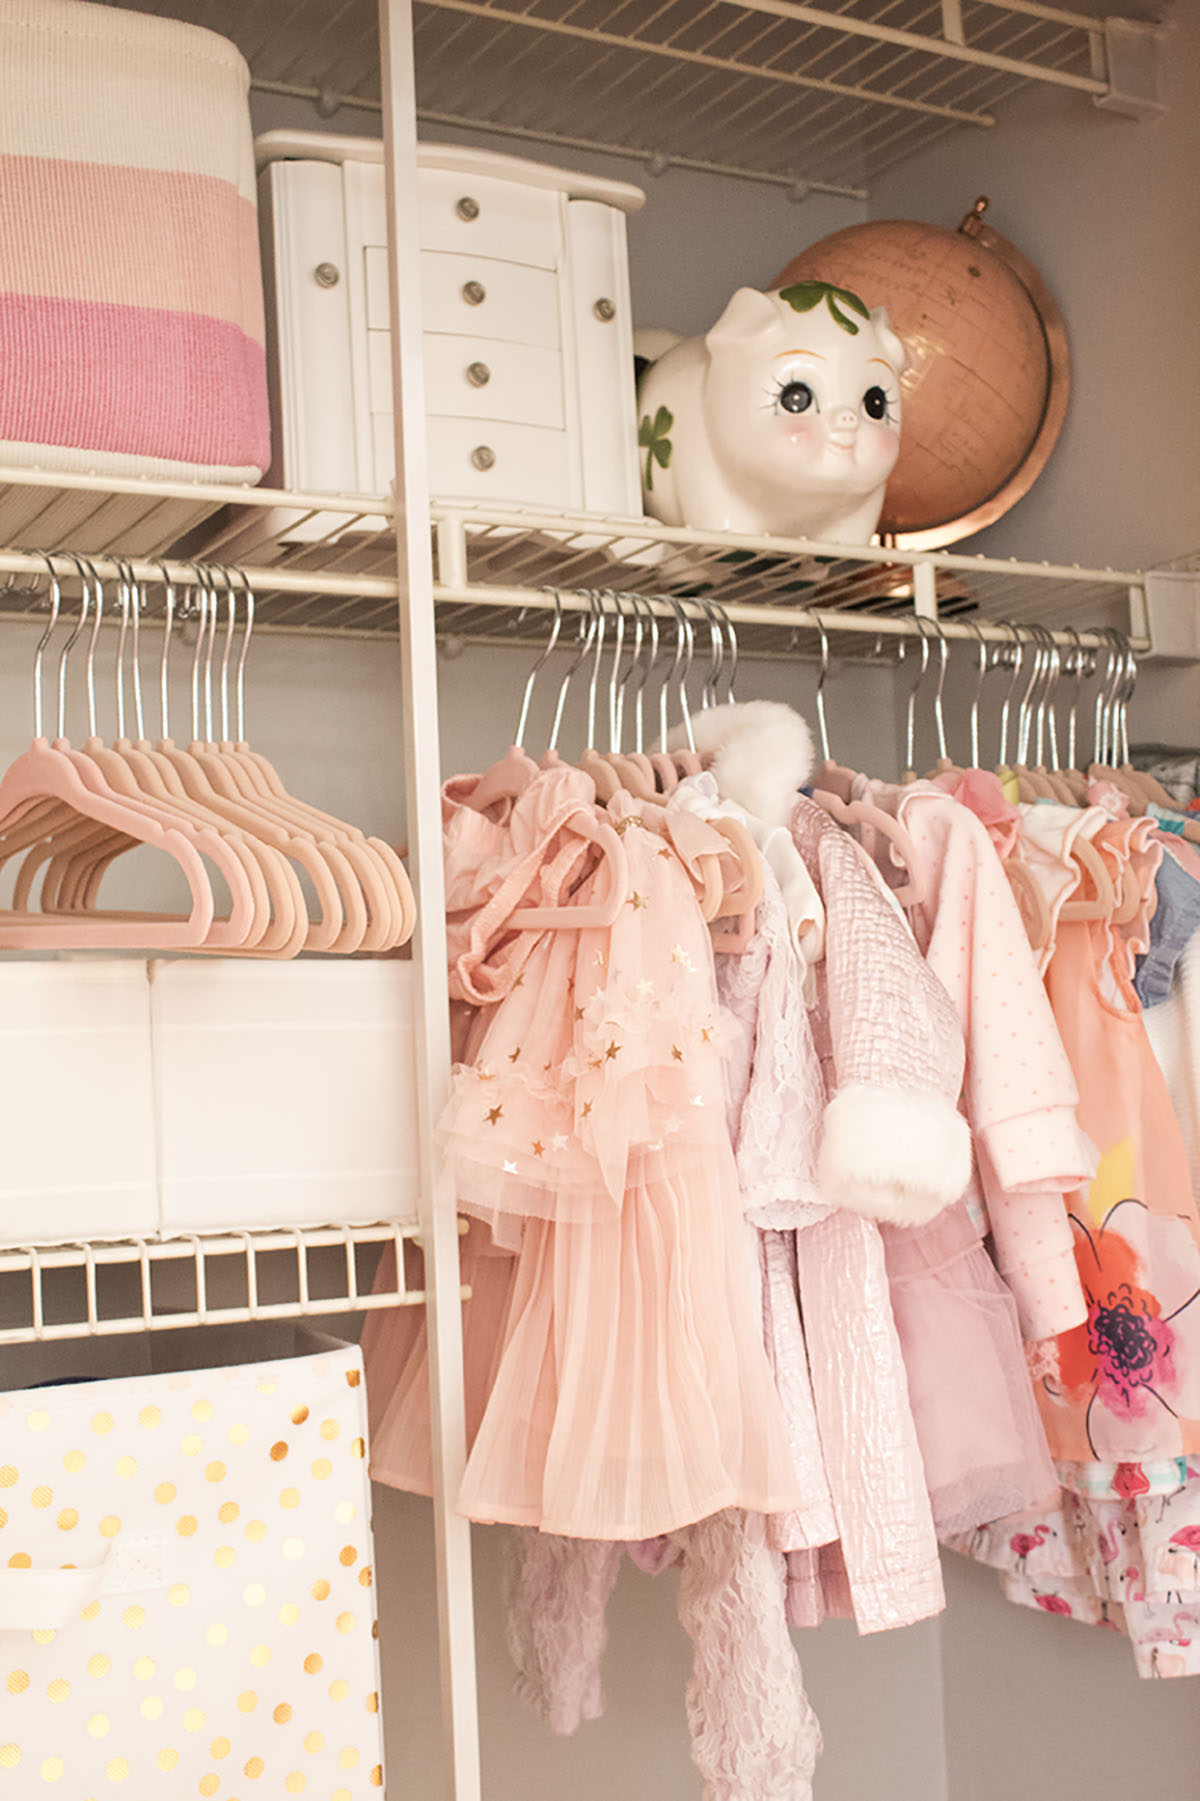 Looking for some nursery organization ideas? Check out this colorful and affordable nursery tour! From the closet to the dressers, I'll show you where to store all of baby's essentials. #nurseyorganizationideas #nurseryorganizationhacks #nurseryorganizationonabudget #nurseryorganizationcloset